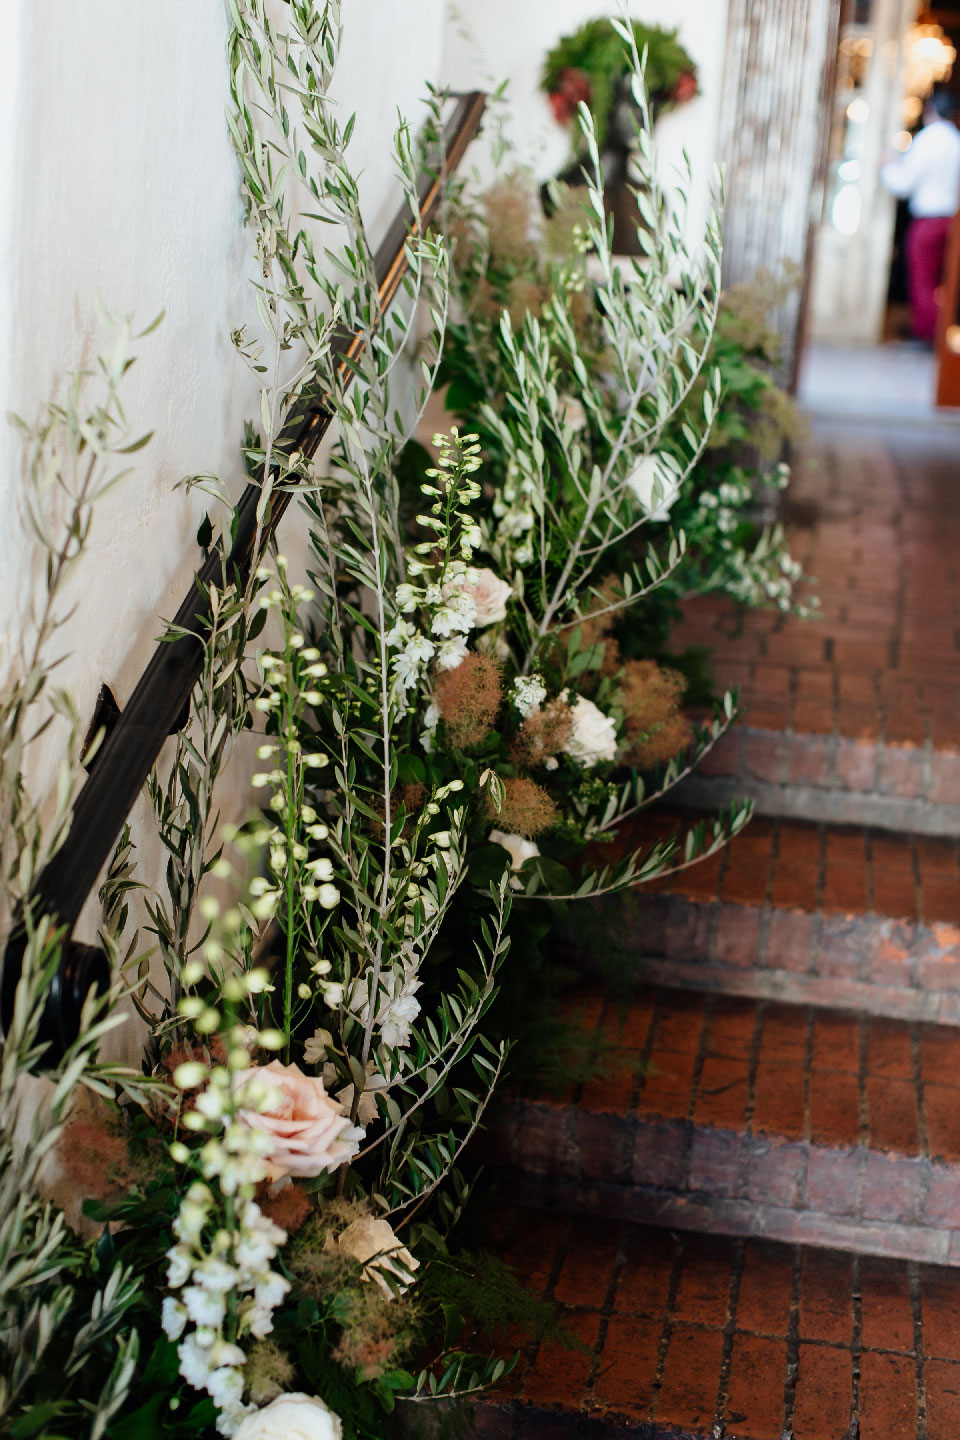 carondelet-los-angeles-wedding-marble-rye-photography-firstlook-details-026.jpg